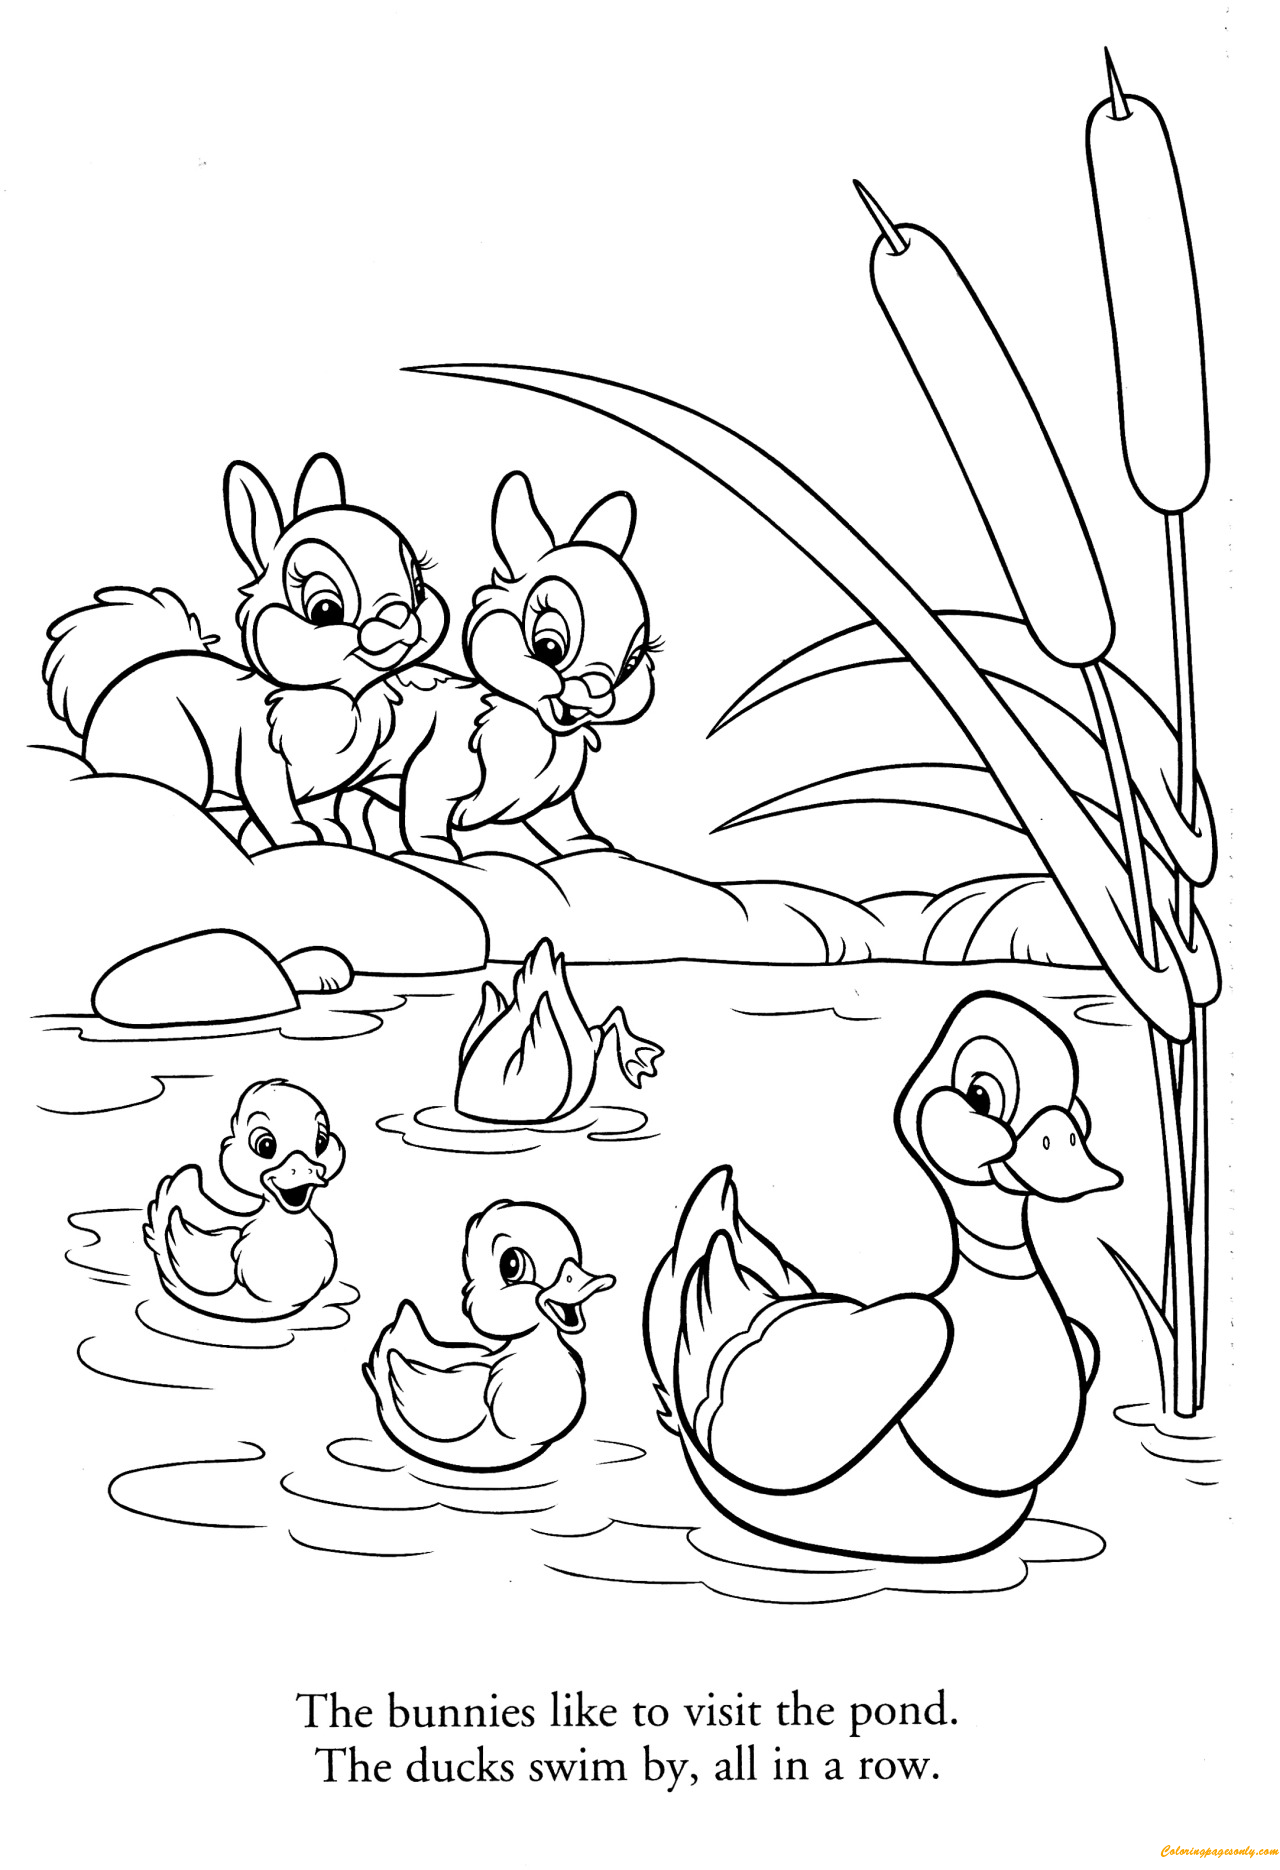 Bunnies And Ducks Coloring Pages